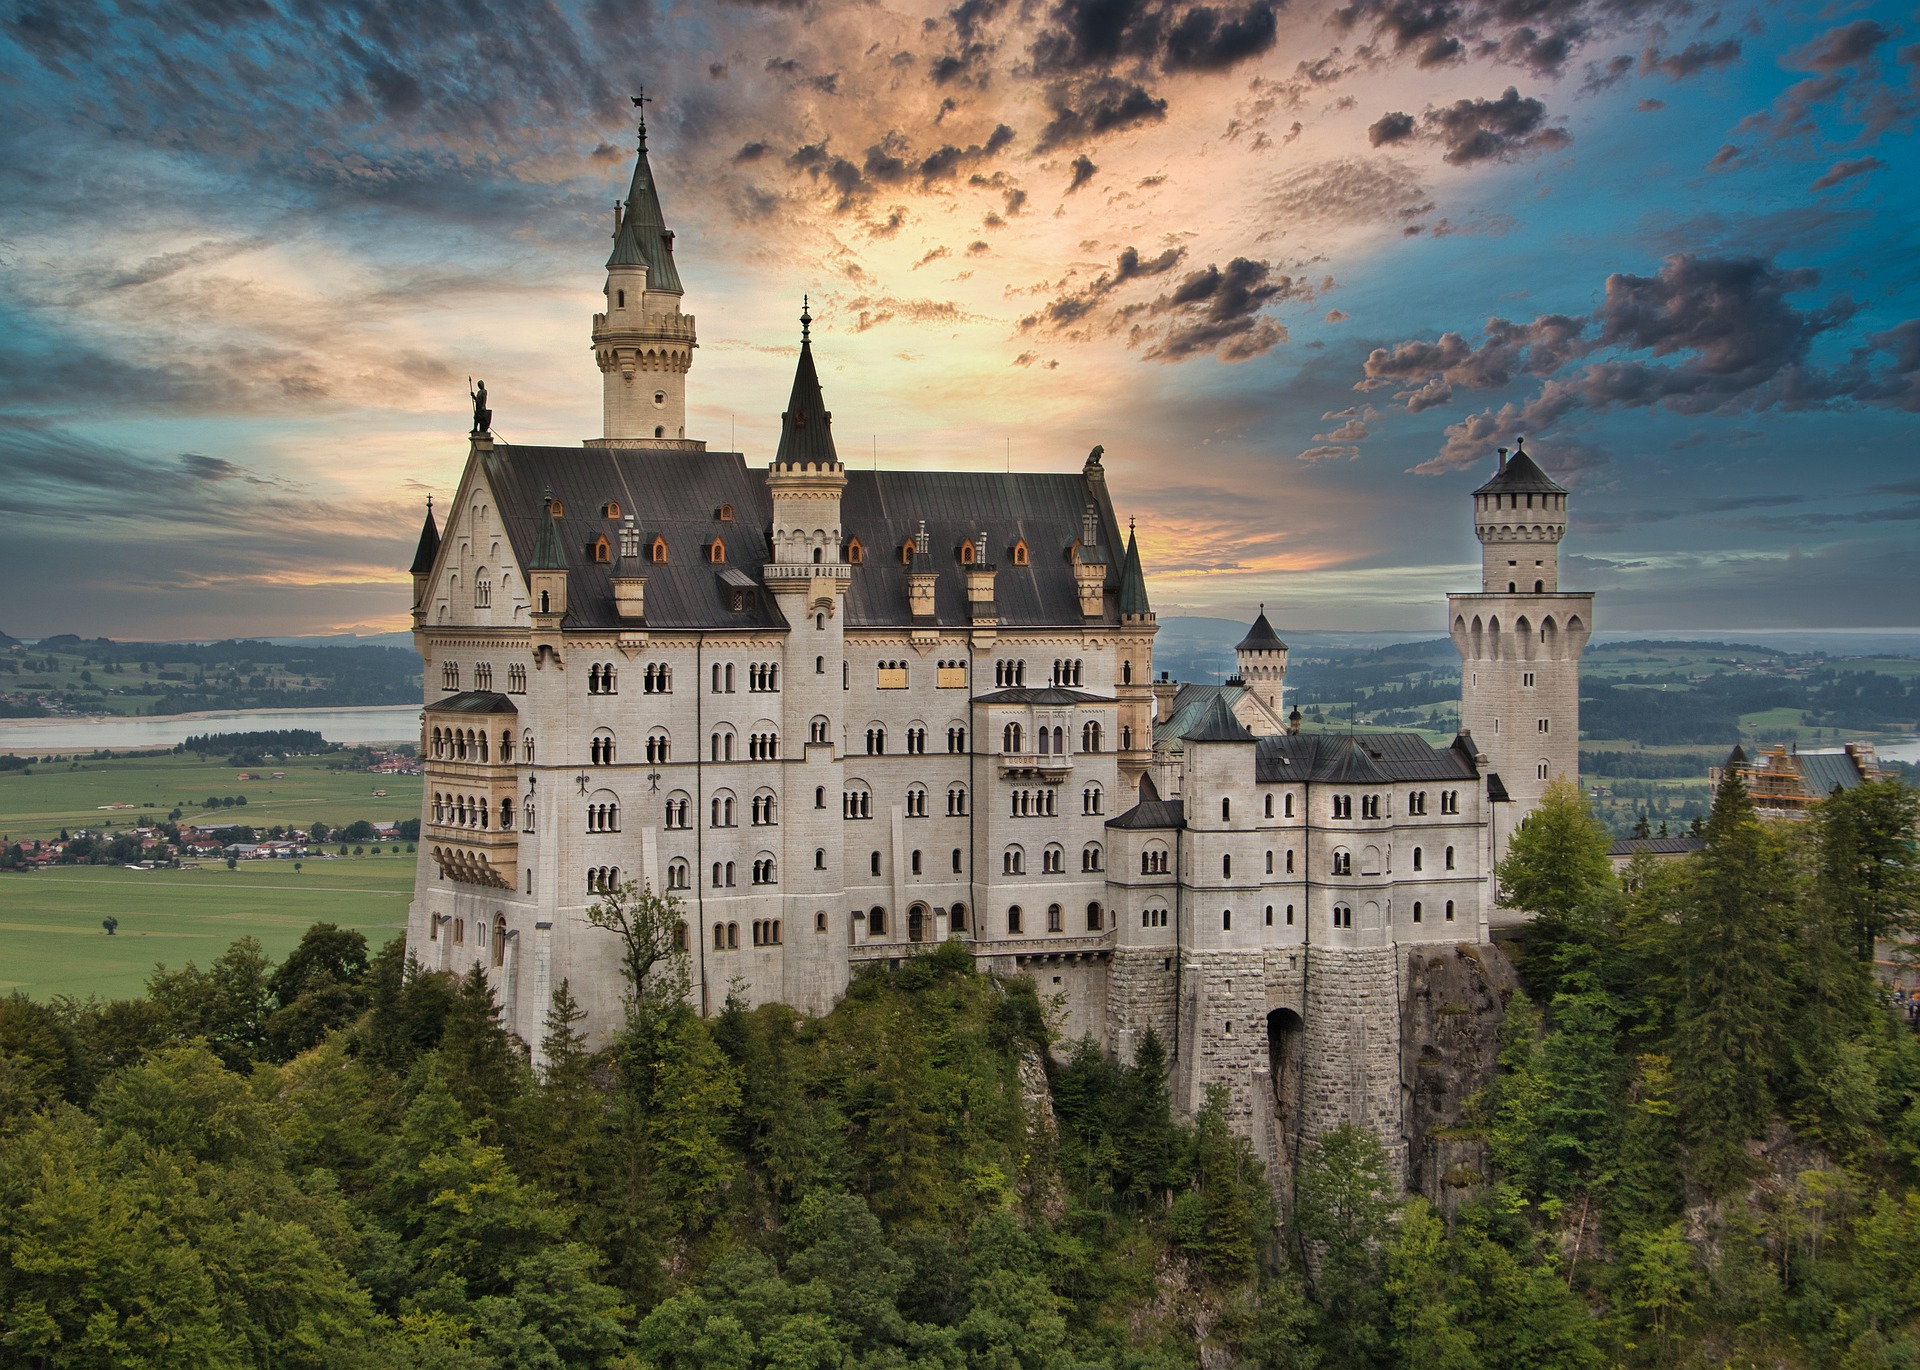 Massive white castle in Bavarian Germany with a cloudy sky